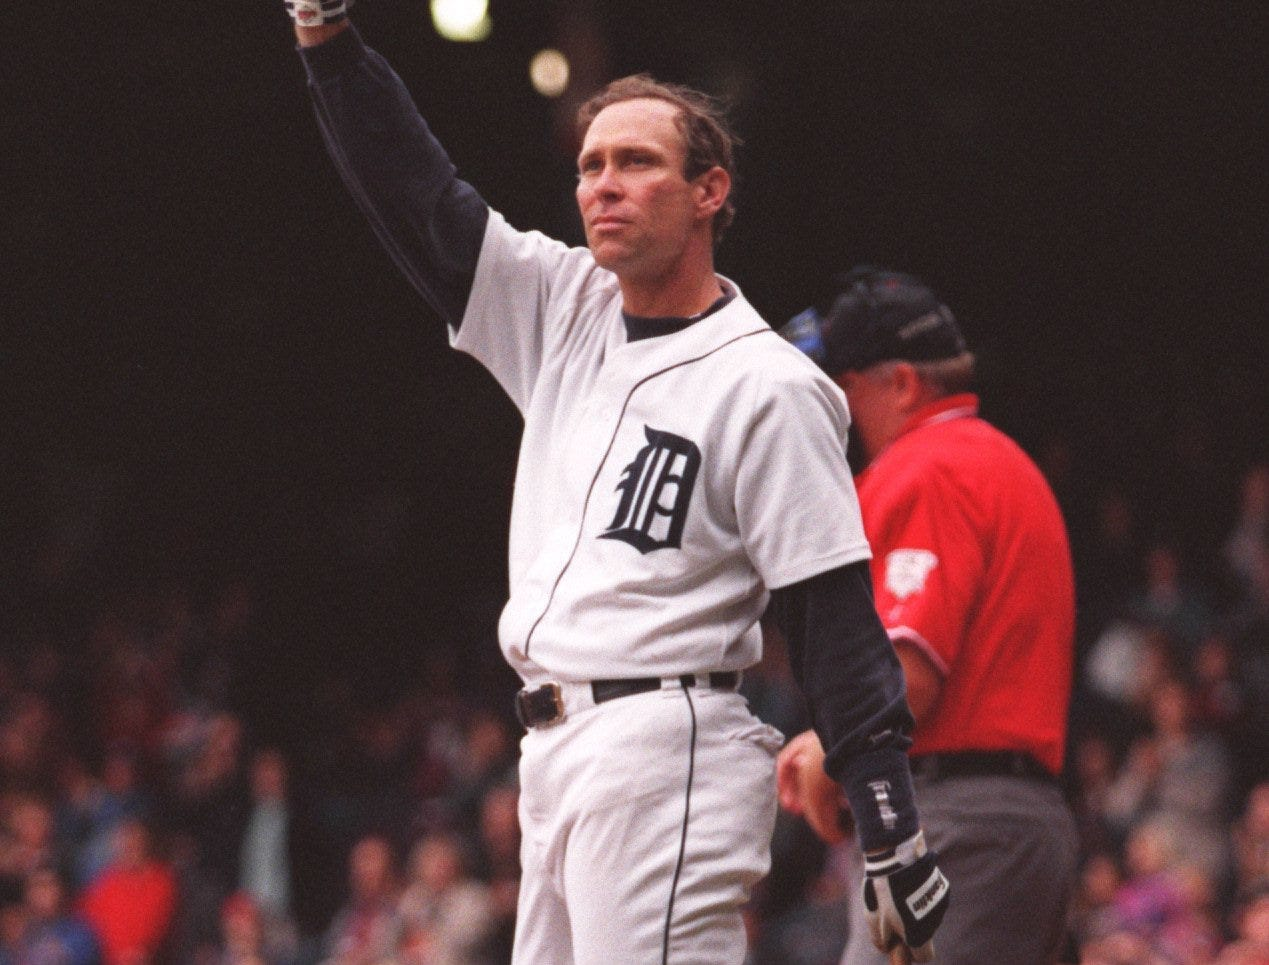 Detroit Tigers' Alan Trammell lifts his helmet to the crowd  against the Milwaukee Brewers on Sunday, Sept. 29, 1996, in Detroit. Trammell announced his retirement following the game. The Brewers beat the Tigers, 7-5.